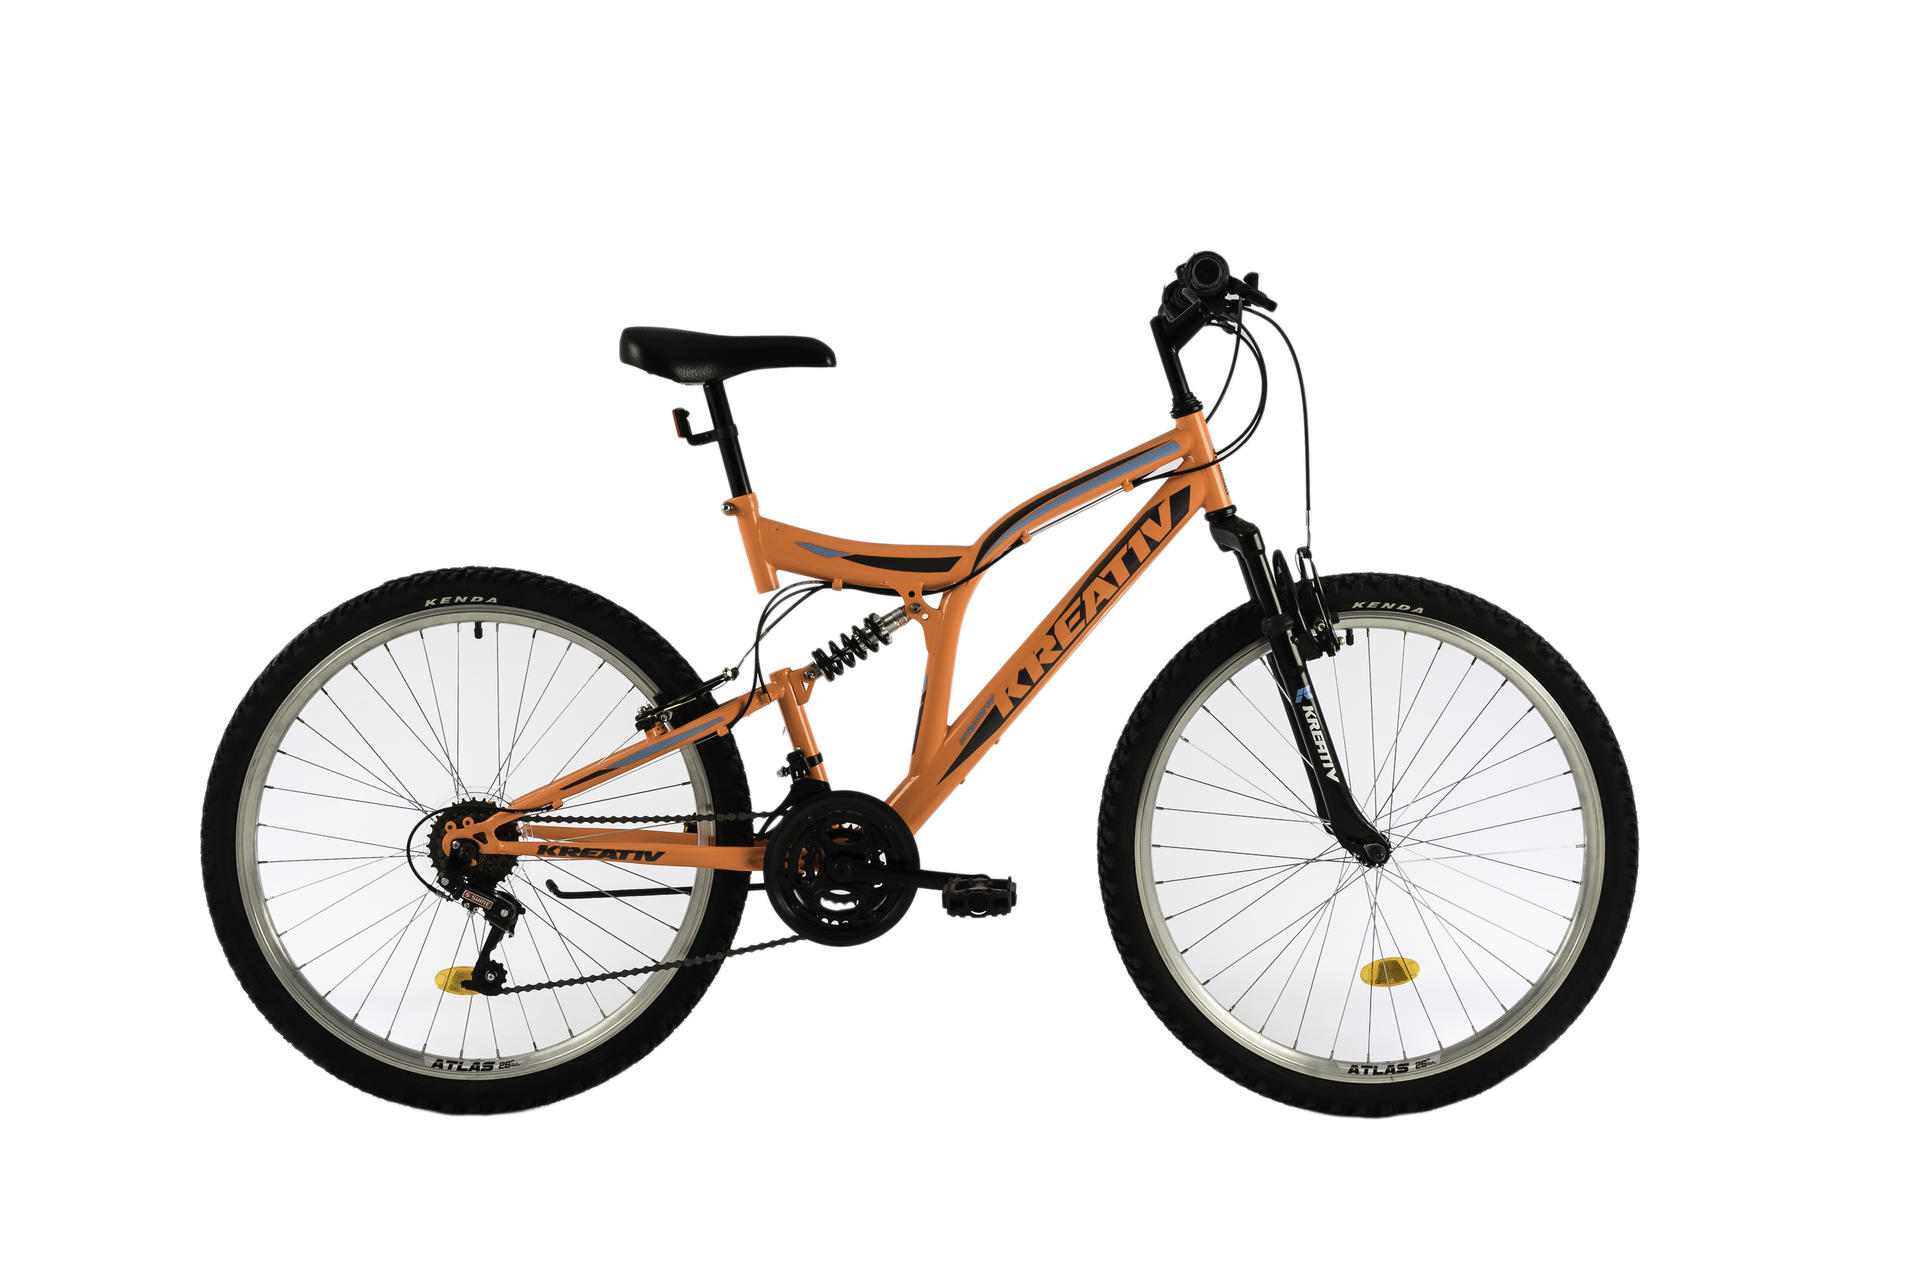 Mountain bike Kreativ 2641 Orange